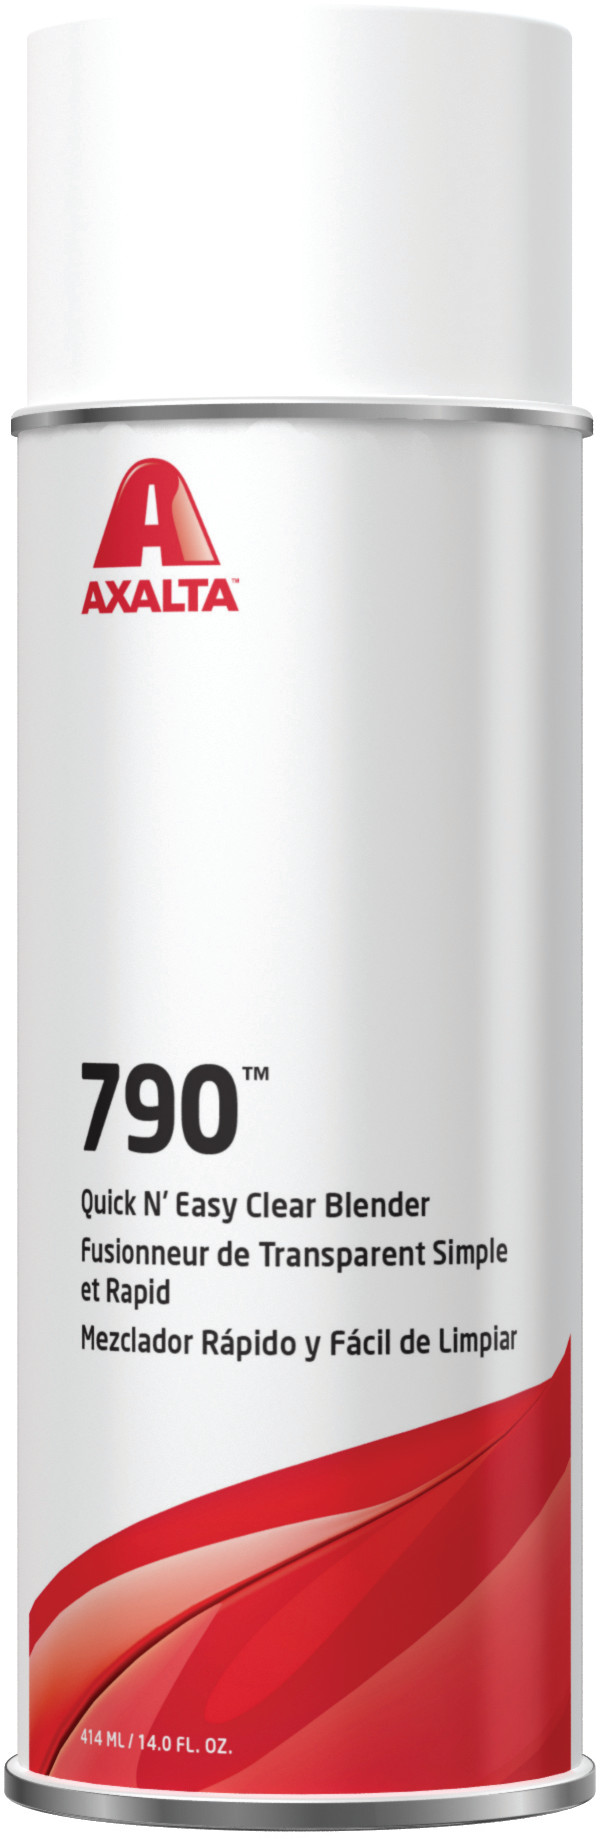 Auto Paint Supply >> Axalta 790 Quick N Easy Clear Blender